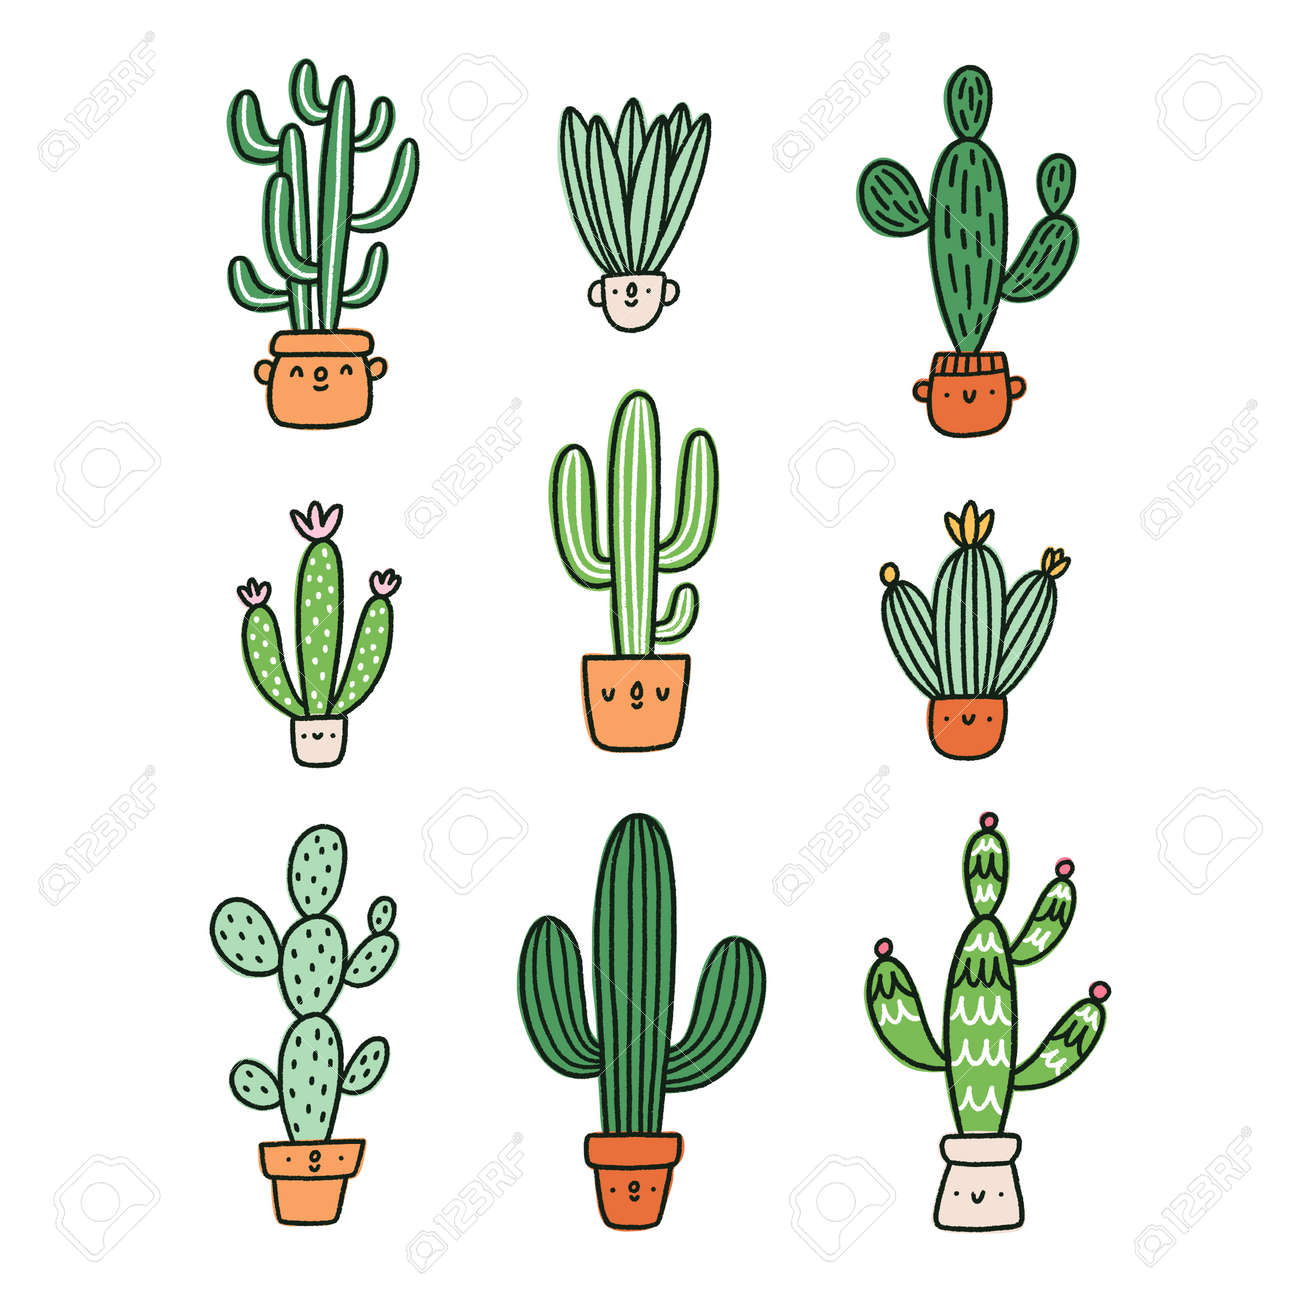 Cute cactus cartoon characters vector collection - 164192633